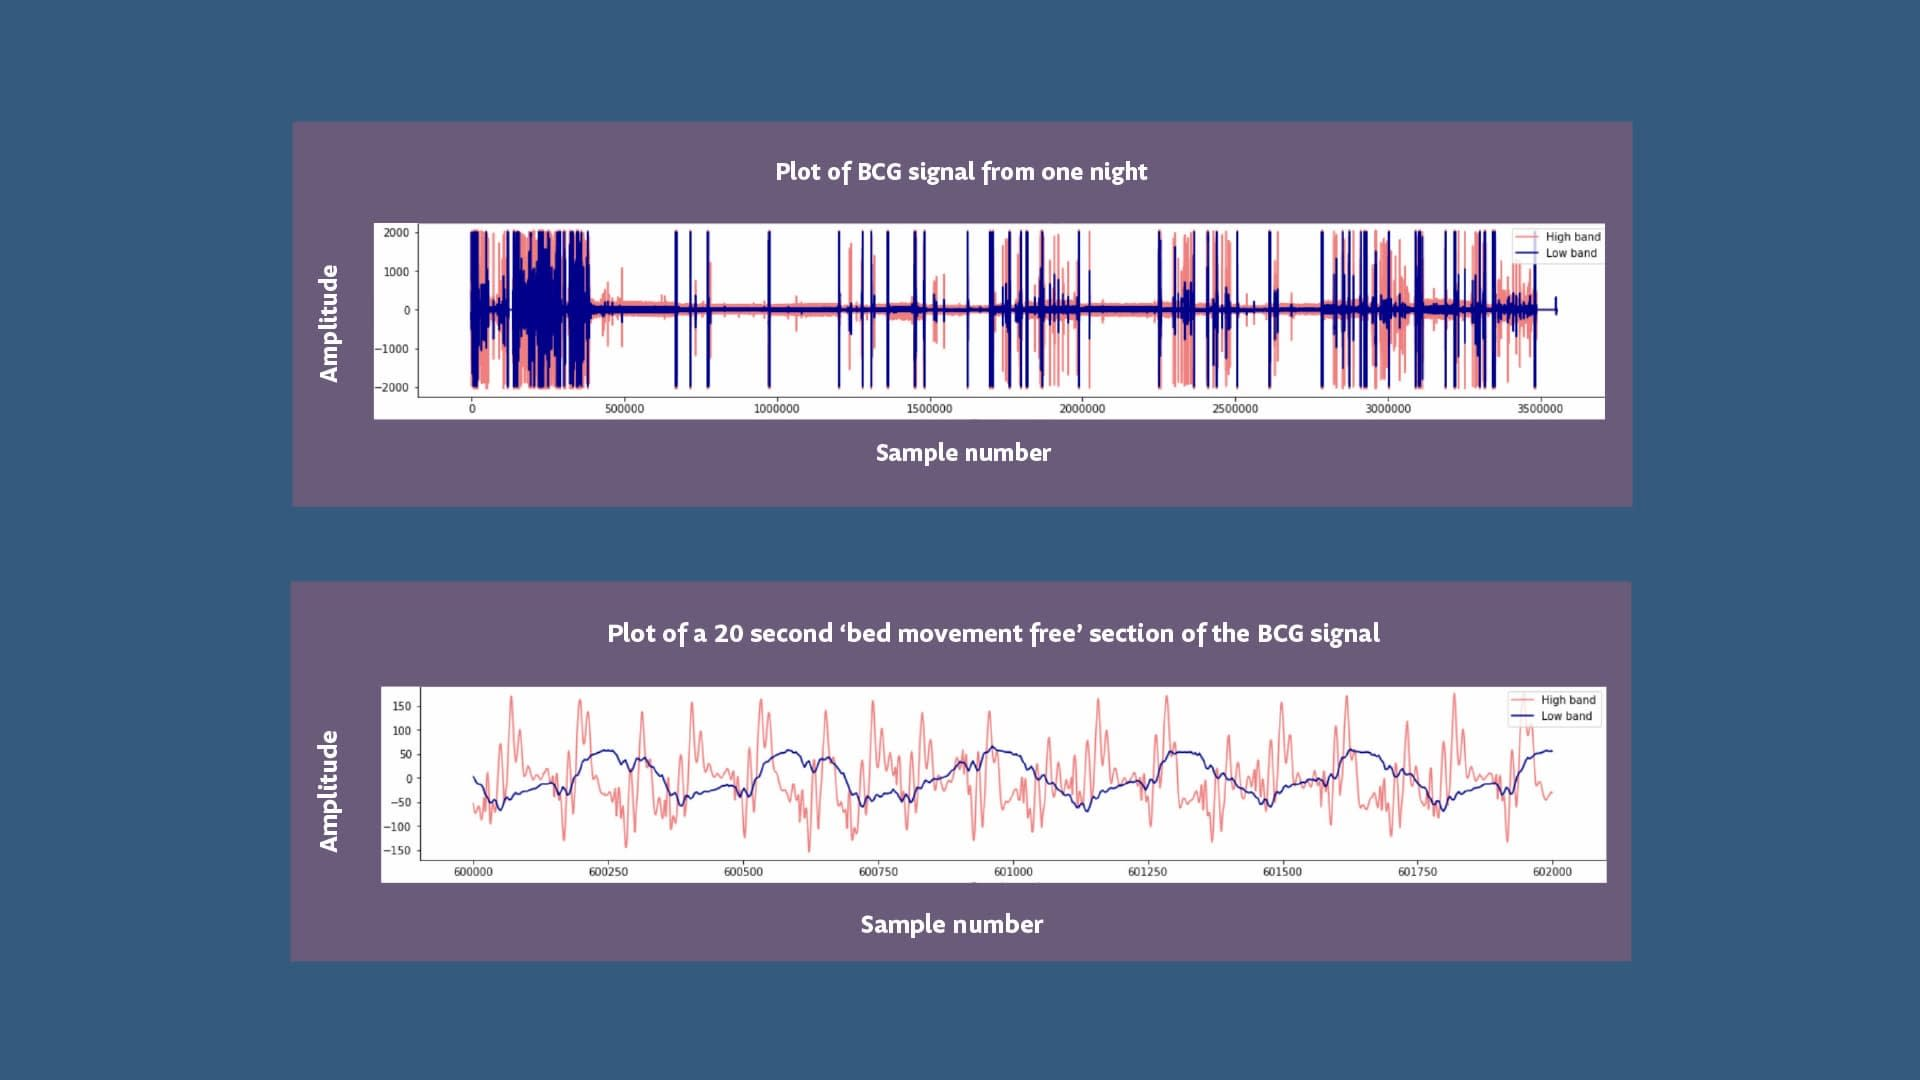 — Improving Sleep Quality: A System to Predict and Prevent Abnormal Sleep Behaviour